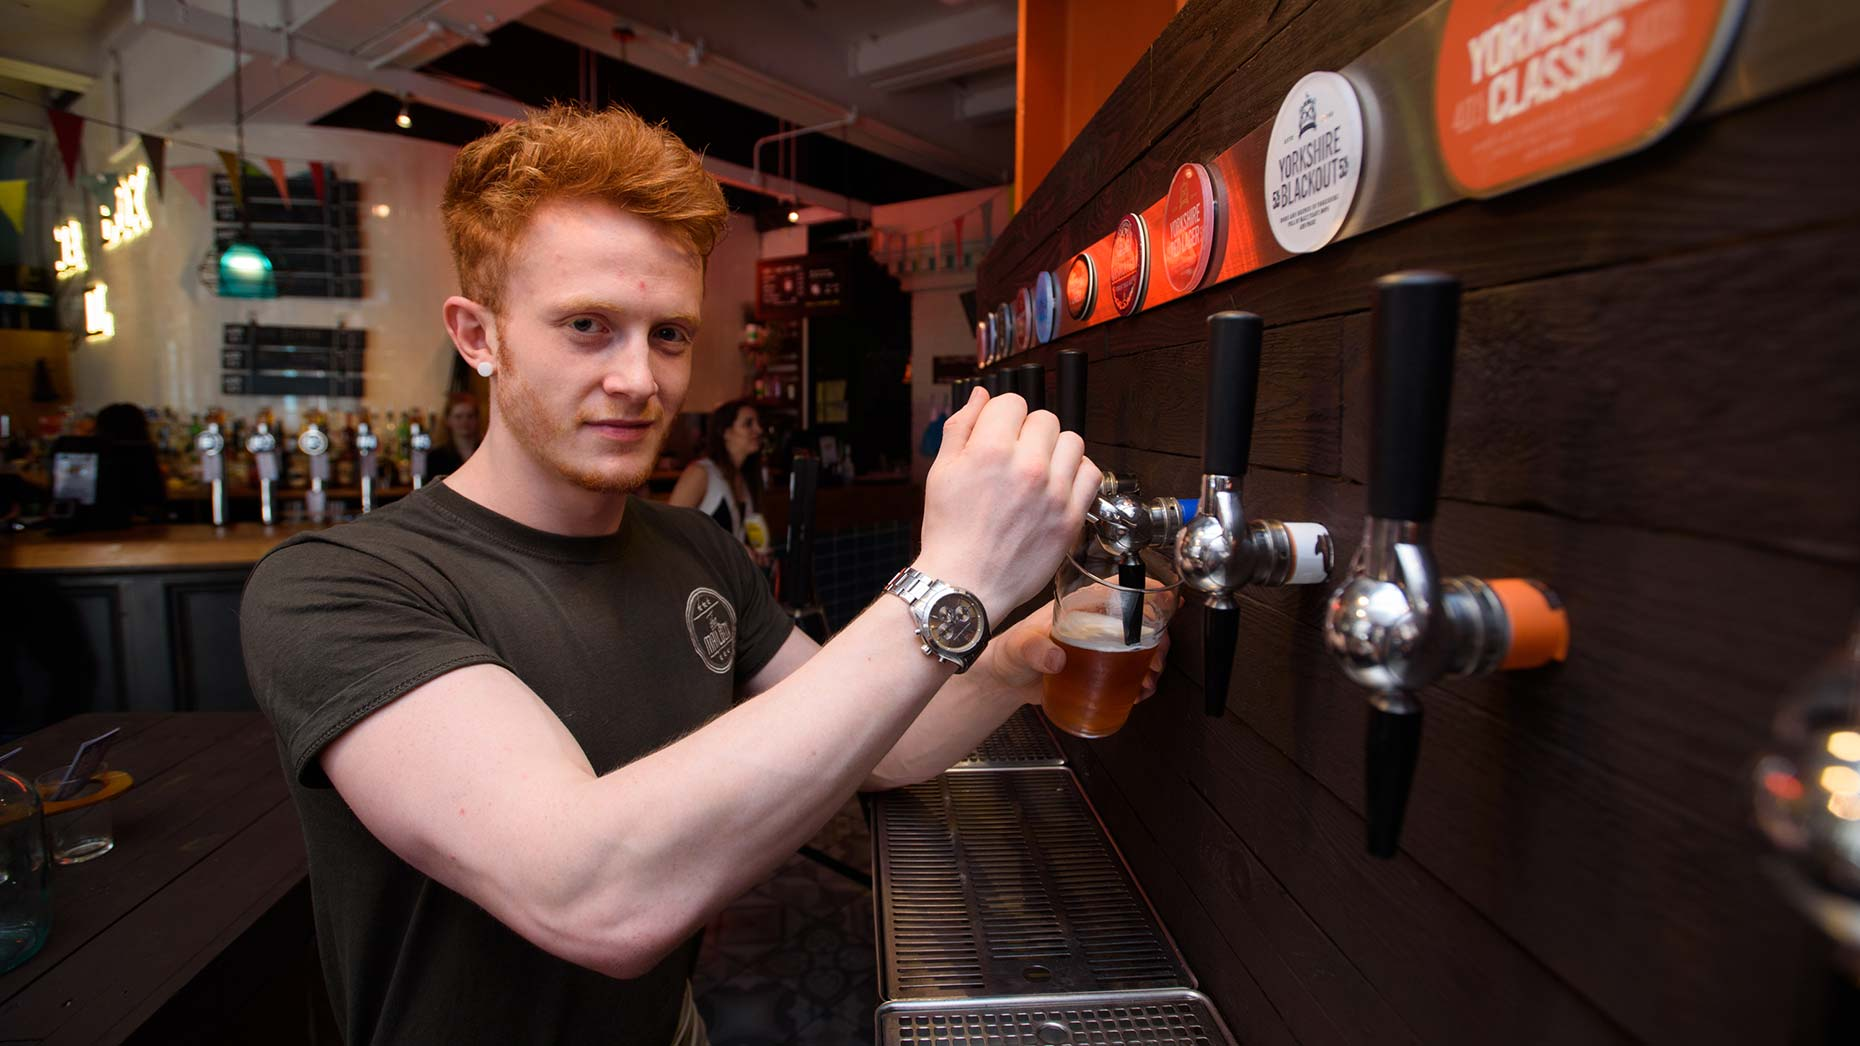 Fancy a crafty pint? Just what you needed with the hot weather. Photo: Steve Smailes for The Lincolnite